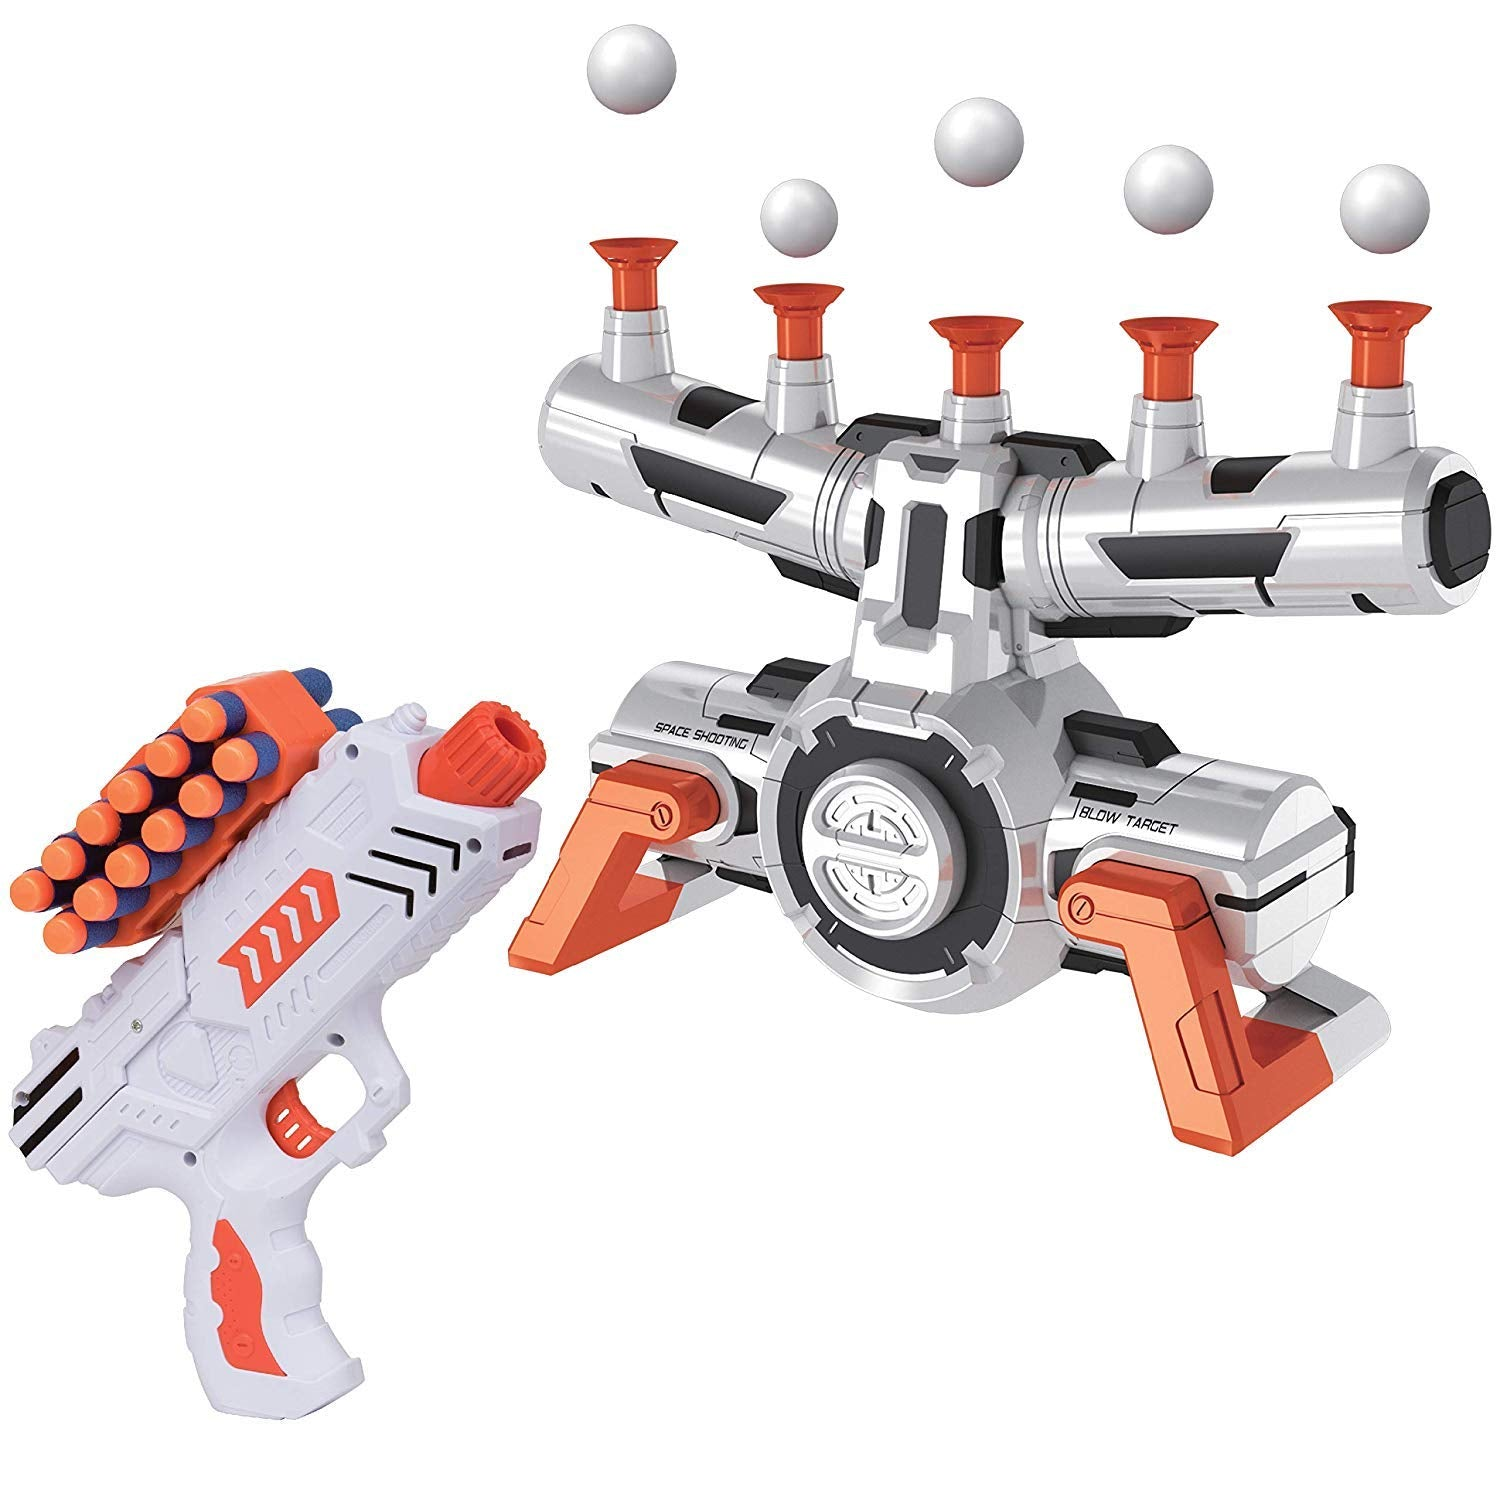 USA Toyz Compatible Nerf Targets for Shooting - AstroShot Zero G Floating Orbs Nerf Target Practice with Blaster Toy Guns for Boys or Girls and Foam Darts - wiihuu